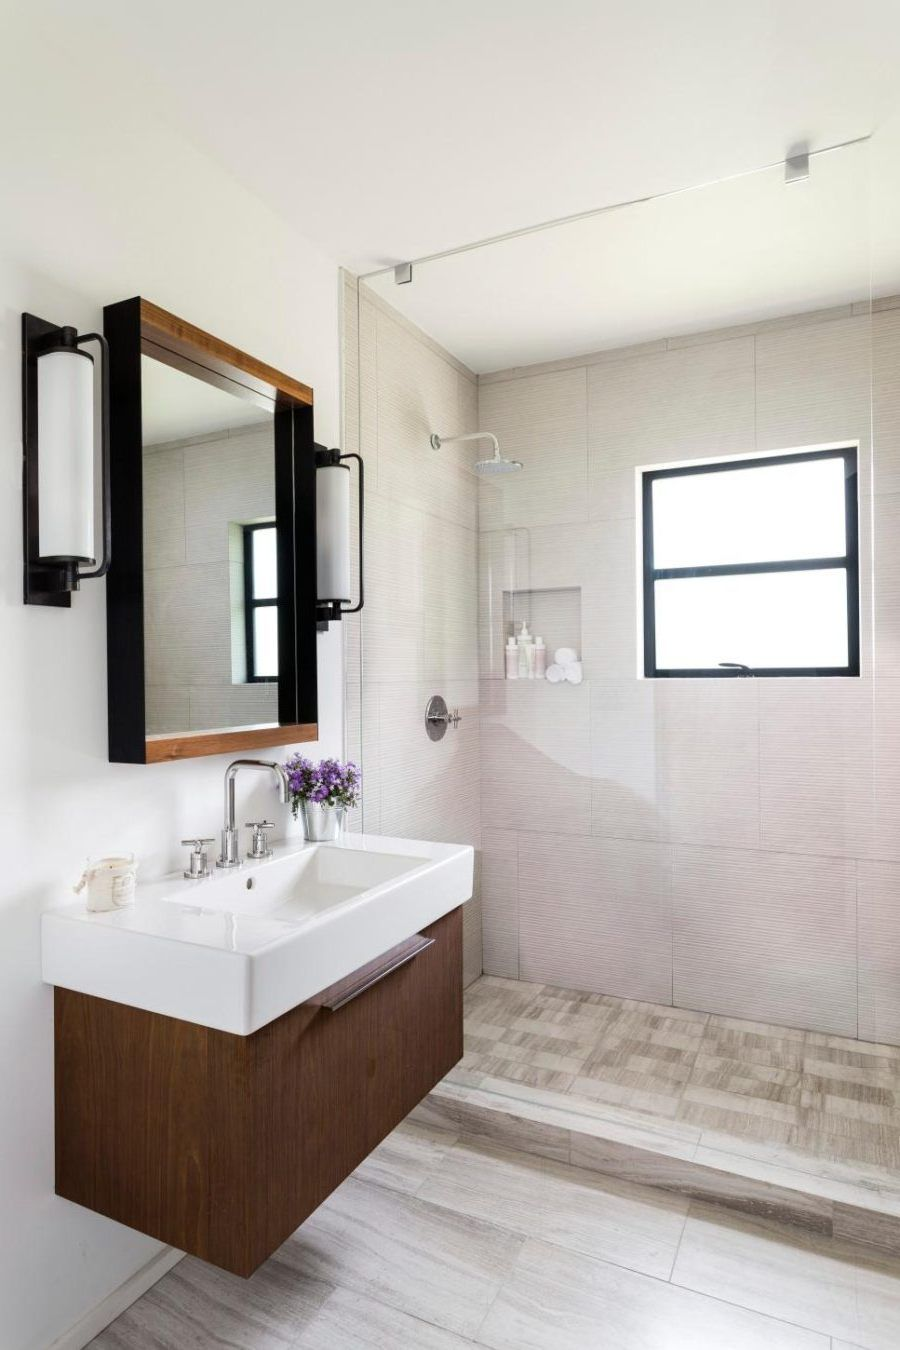 30 Marvelous Small Bathrooms Remodeling Ideas Pinzones Small Bathroom Styles Modern Small Bathrooms Bathroom Design Small Bathroom design ideas uk